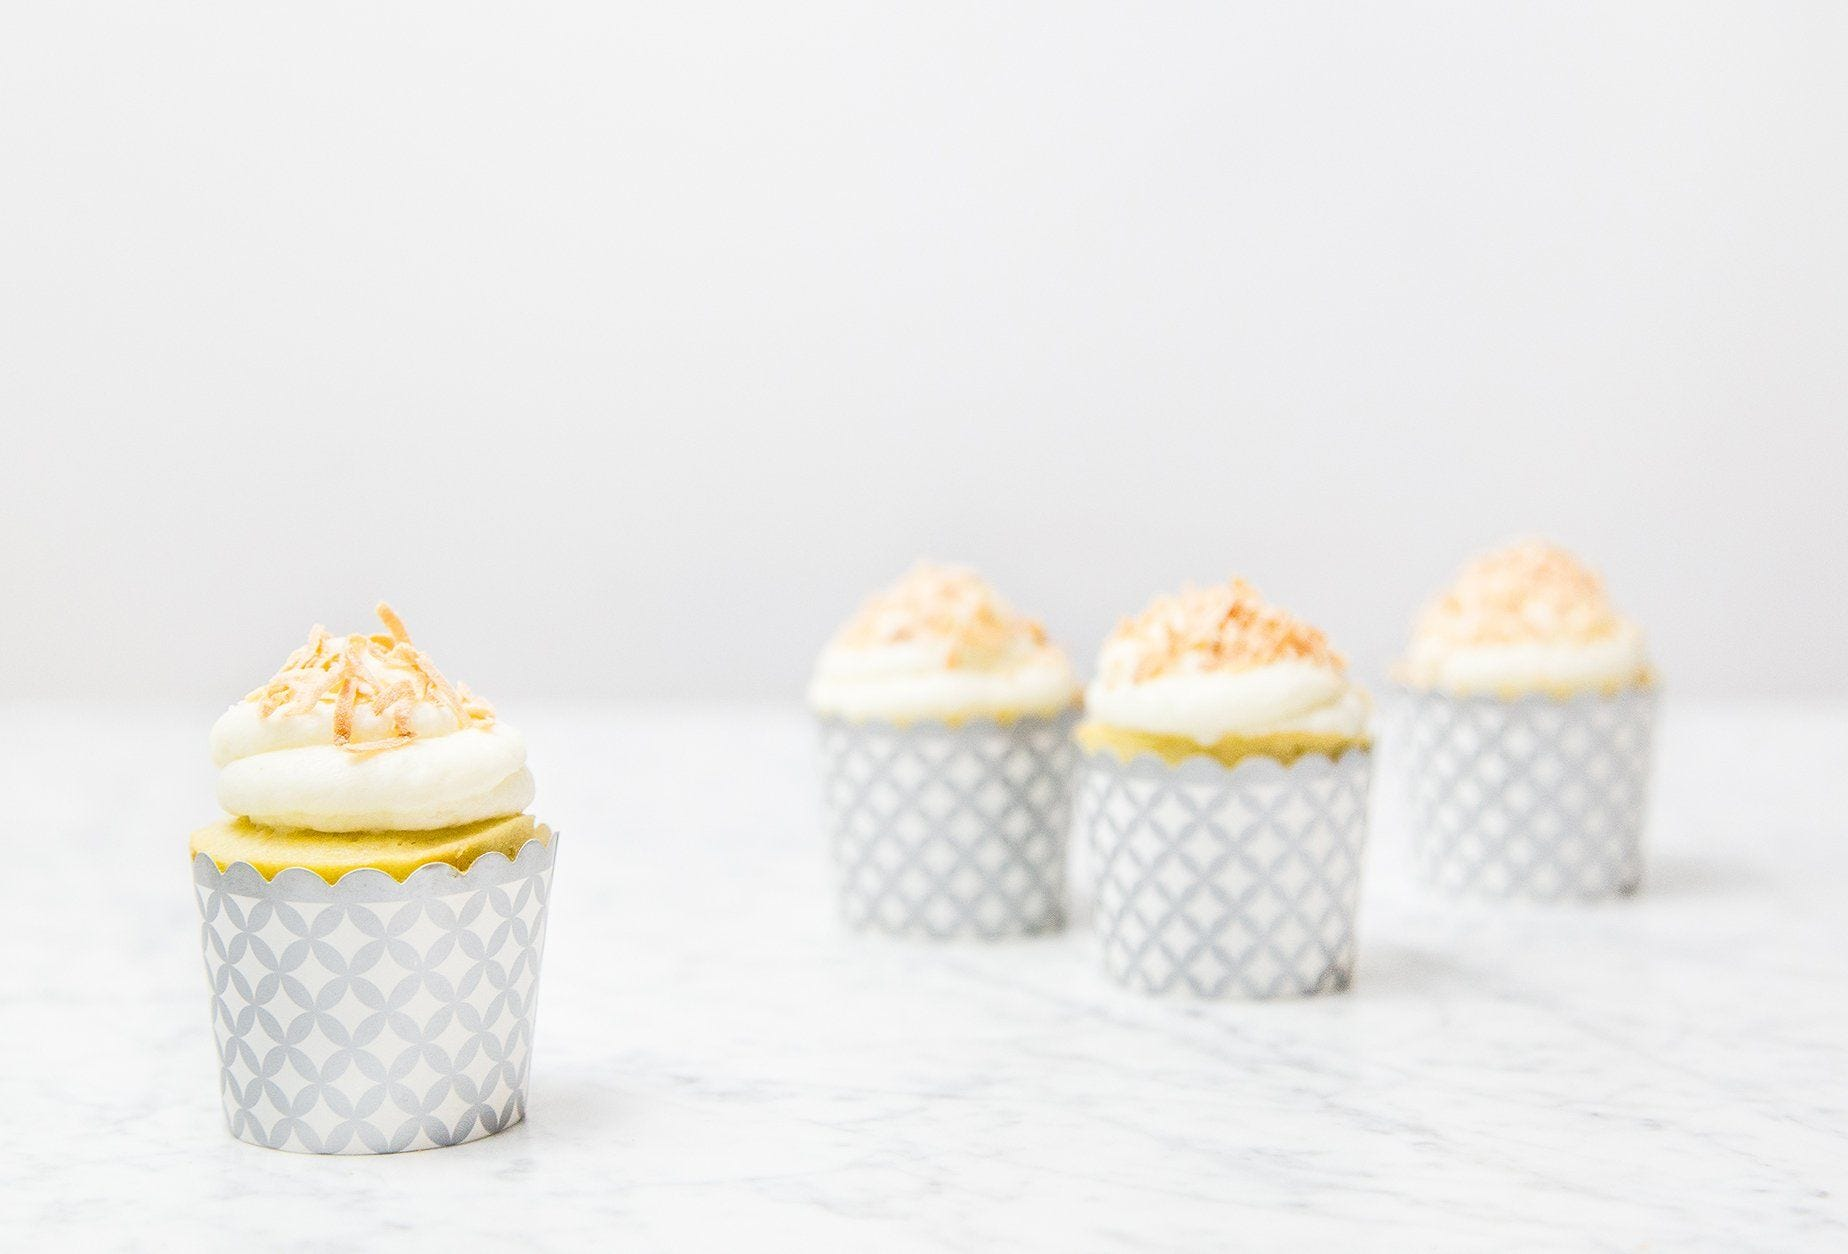 Coconut Cupcakes with Toasted Flakes recipe.